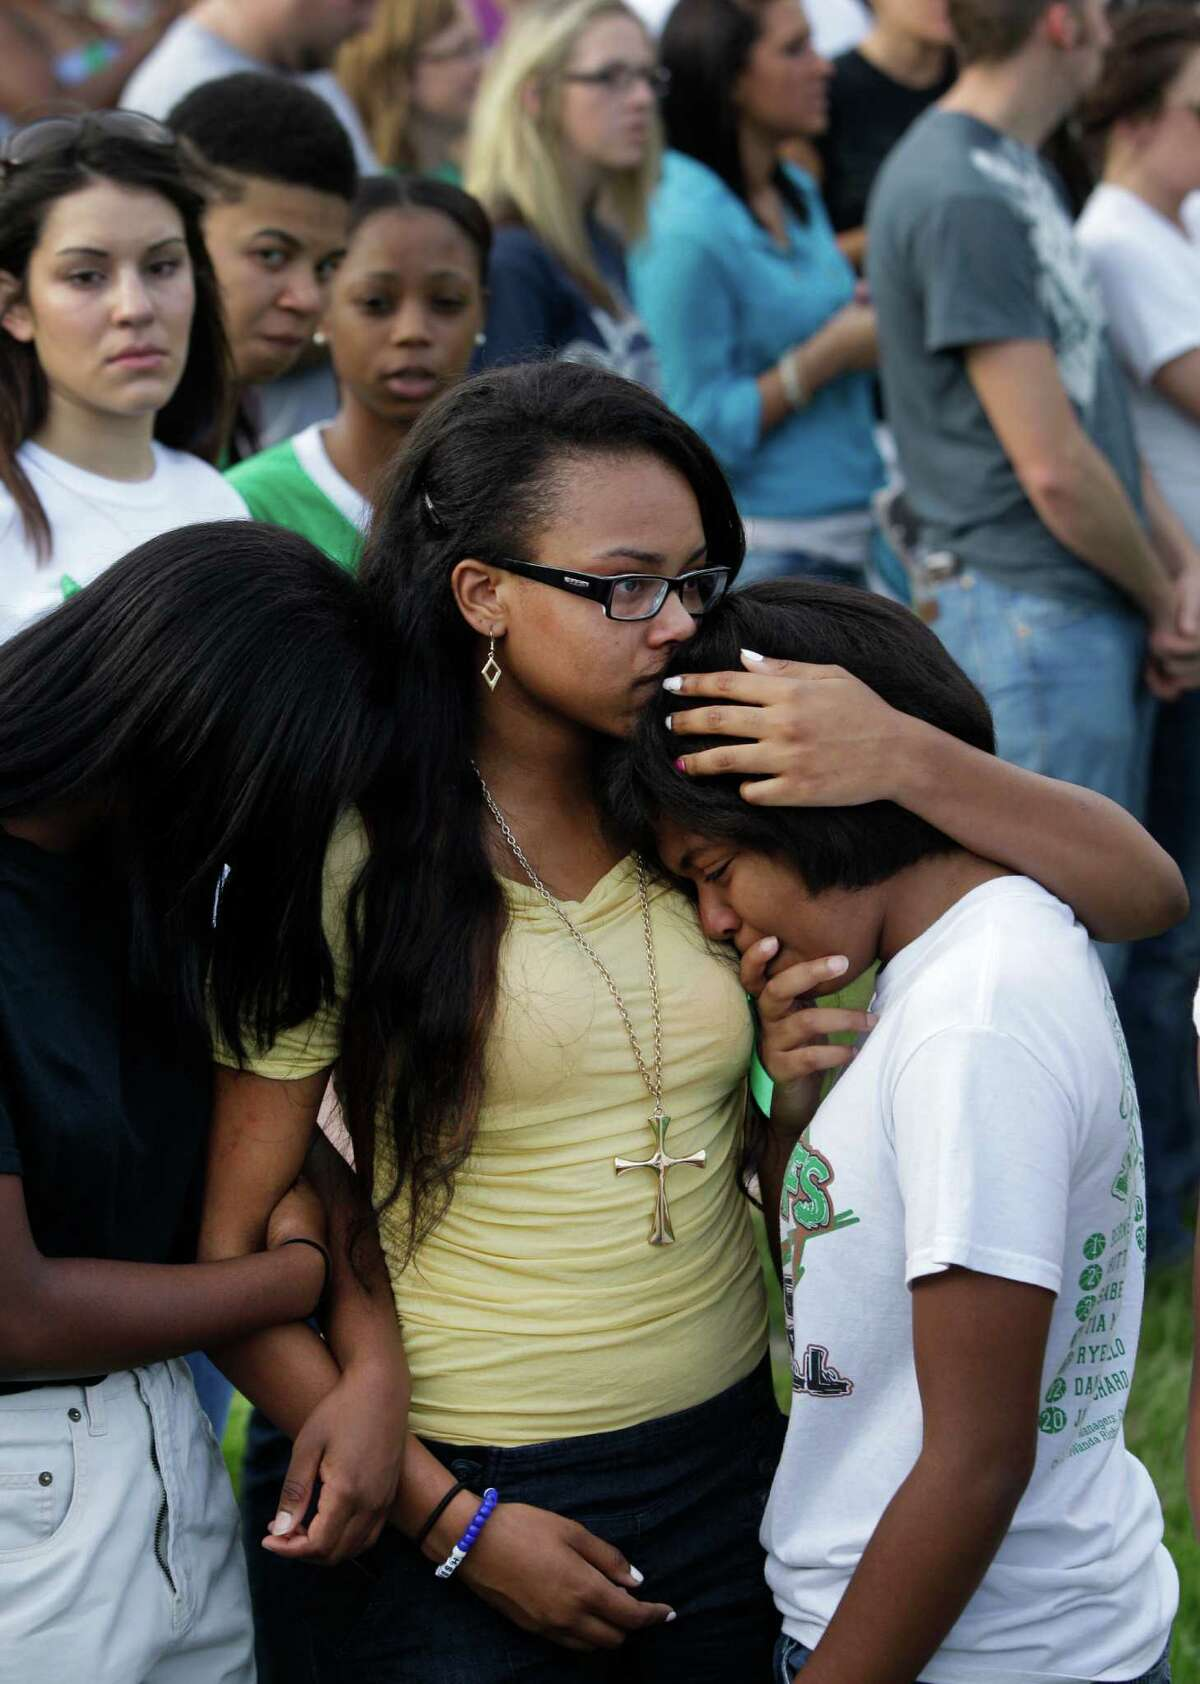 Justice Comeaux, left, a junior, Monique Sutton, center, a junior, Lavonne Williams, right, a junior, hug during gathering with more than 200 people to pray outside Spring High School Sunday, Sept. 8, 2013, in Spring. Students will return to classes on Monday to the school where Joshua Broussard, 17, a Spring High School student was fatally stabbed and three others injured at the school Wednesday, Sept. 3, 2013. Luis Alonzo Alfaro, 17, has been charged with murder.